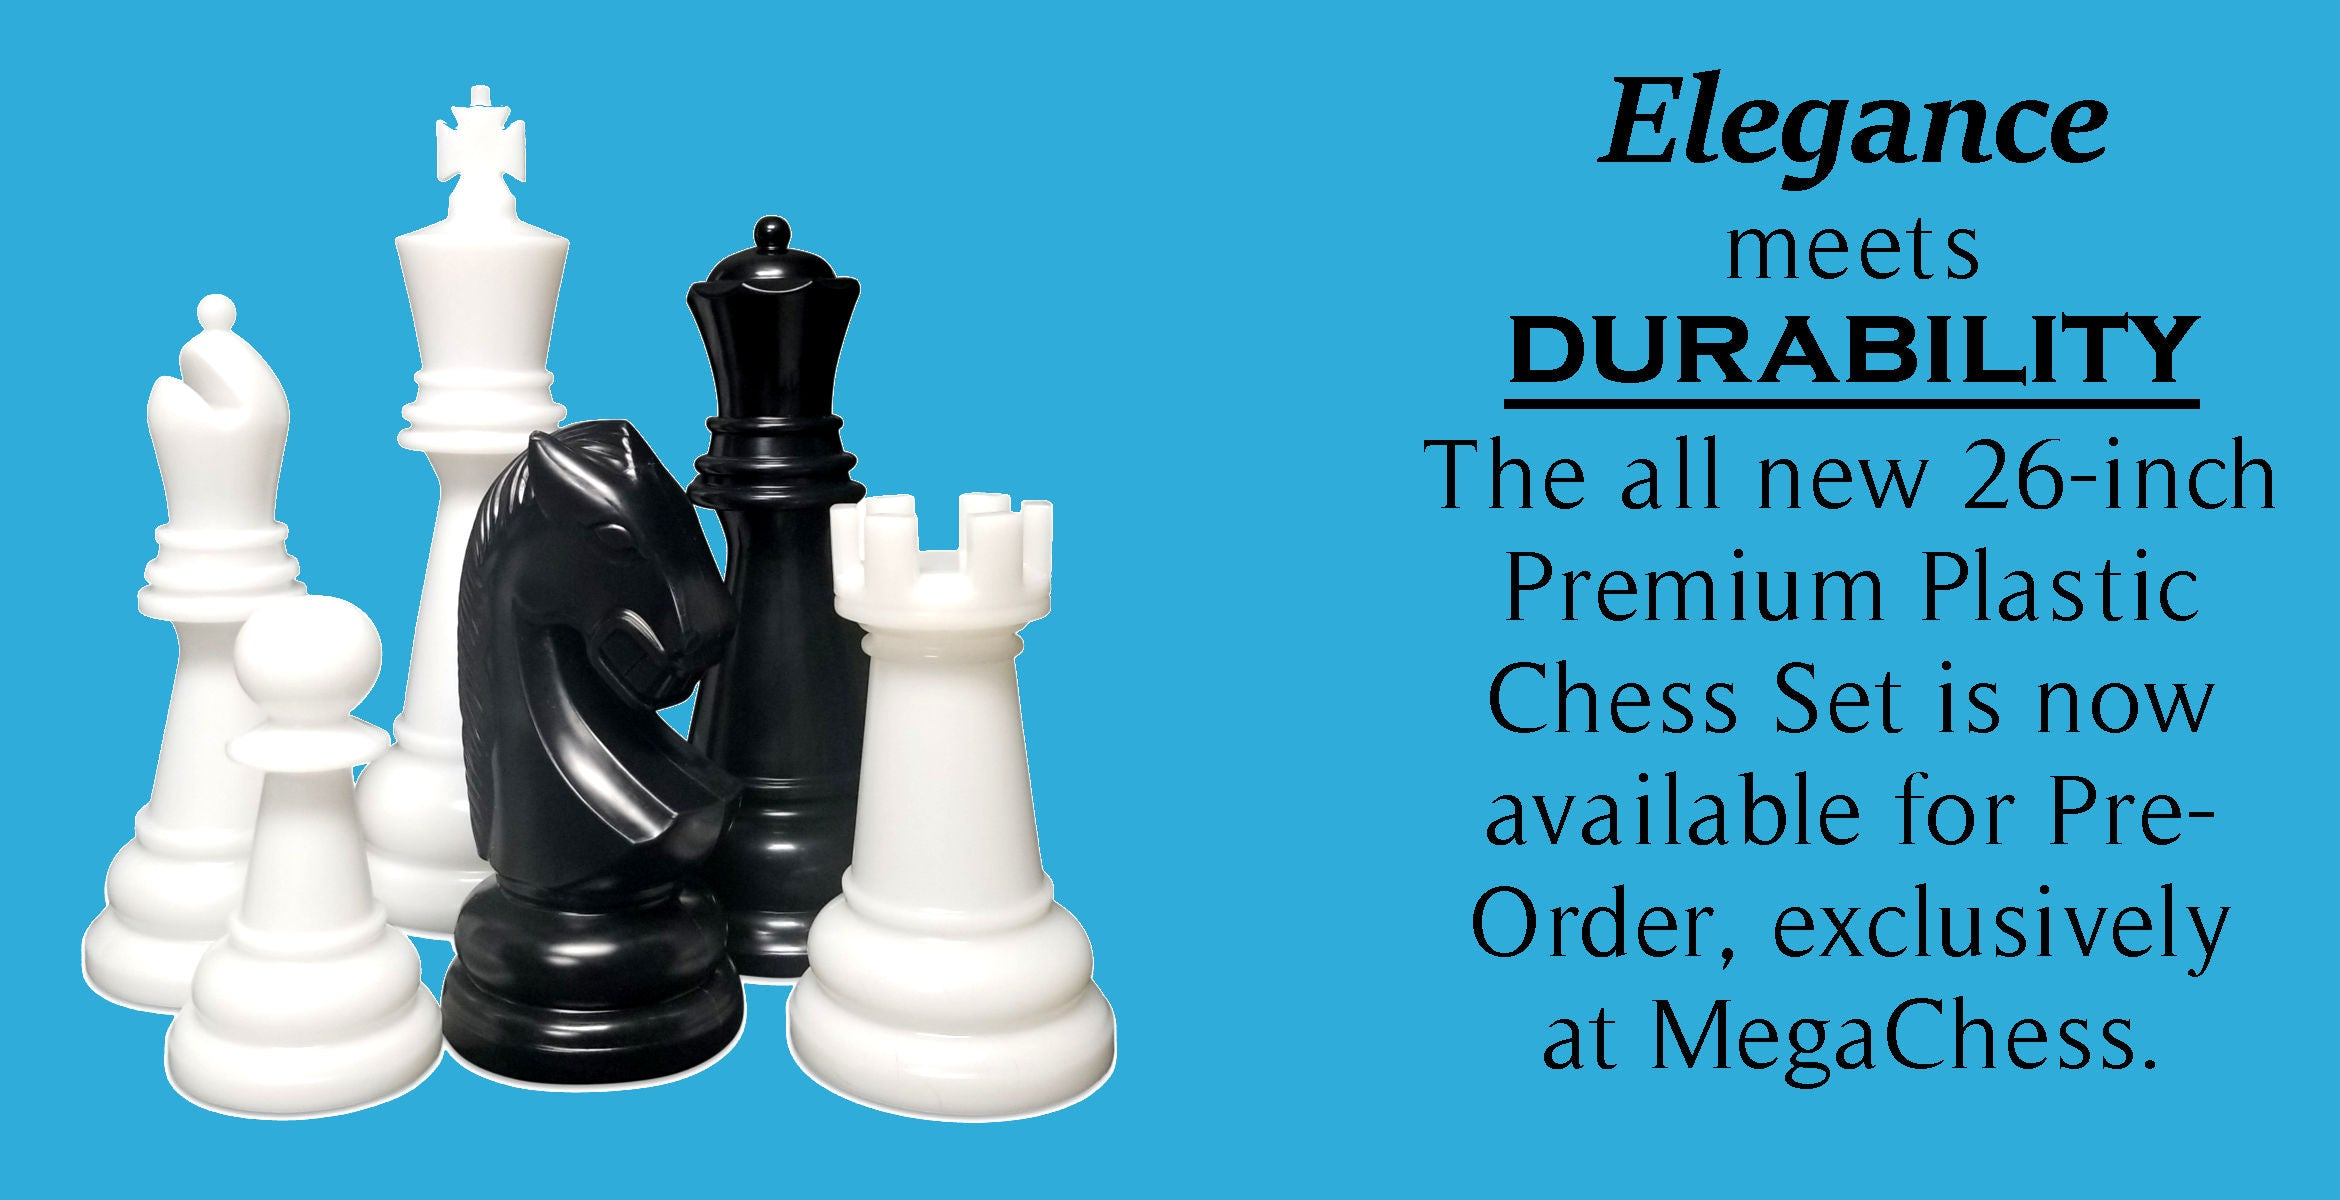 Elegant meets durable. The all new 26-inch premium plastic chess set is now available for pre-order, exclusively at megachess.